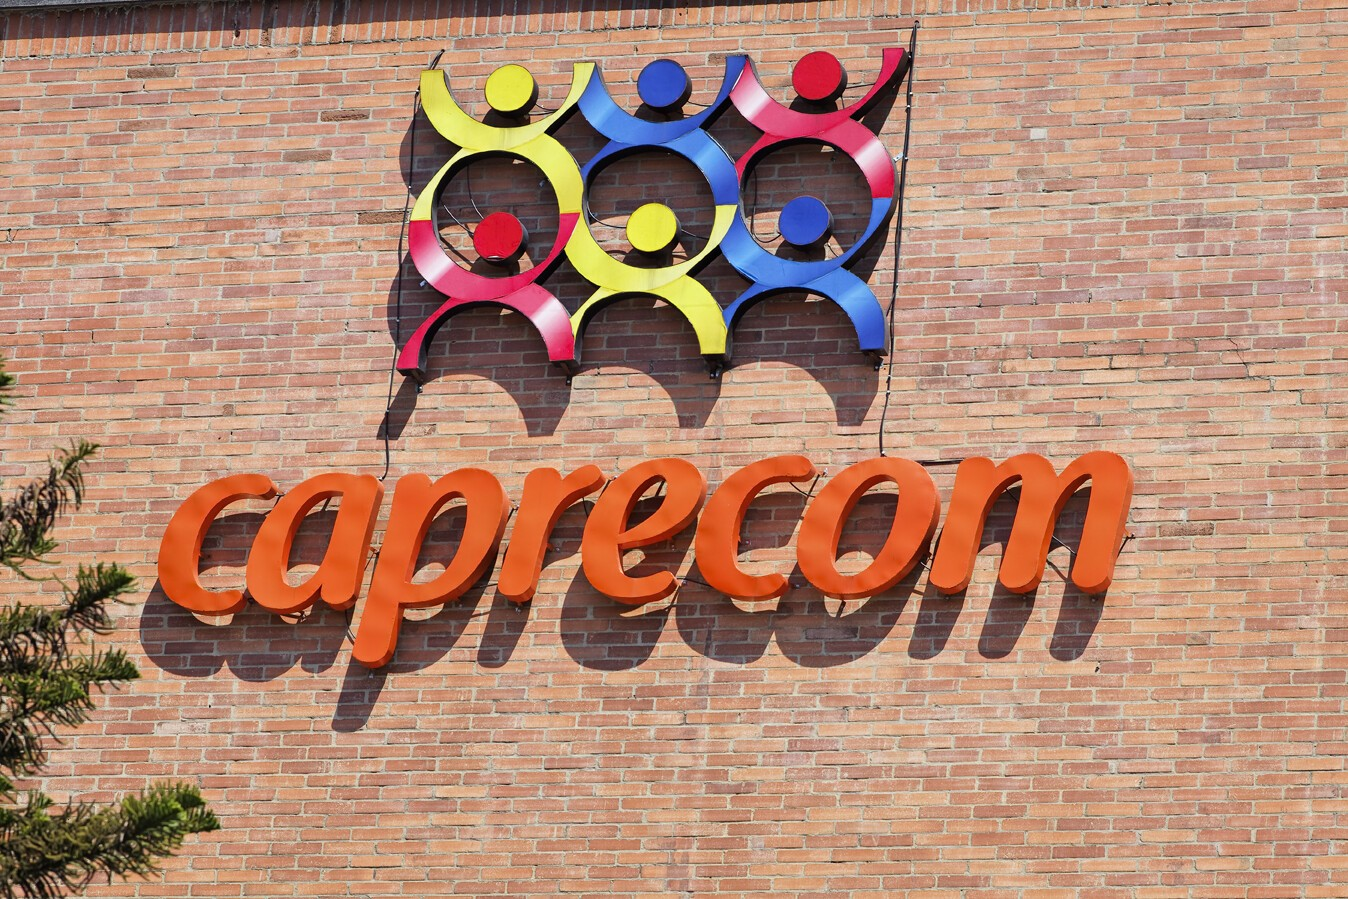 Caprecom chooses BlackBerry's Cross-Platform BES12 solution